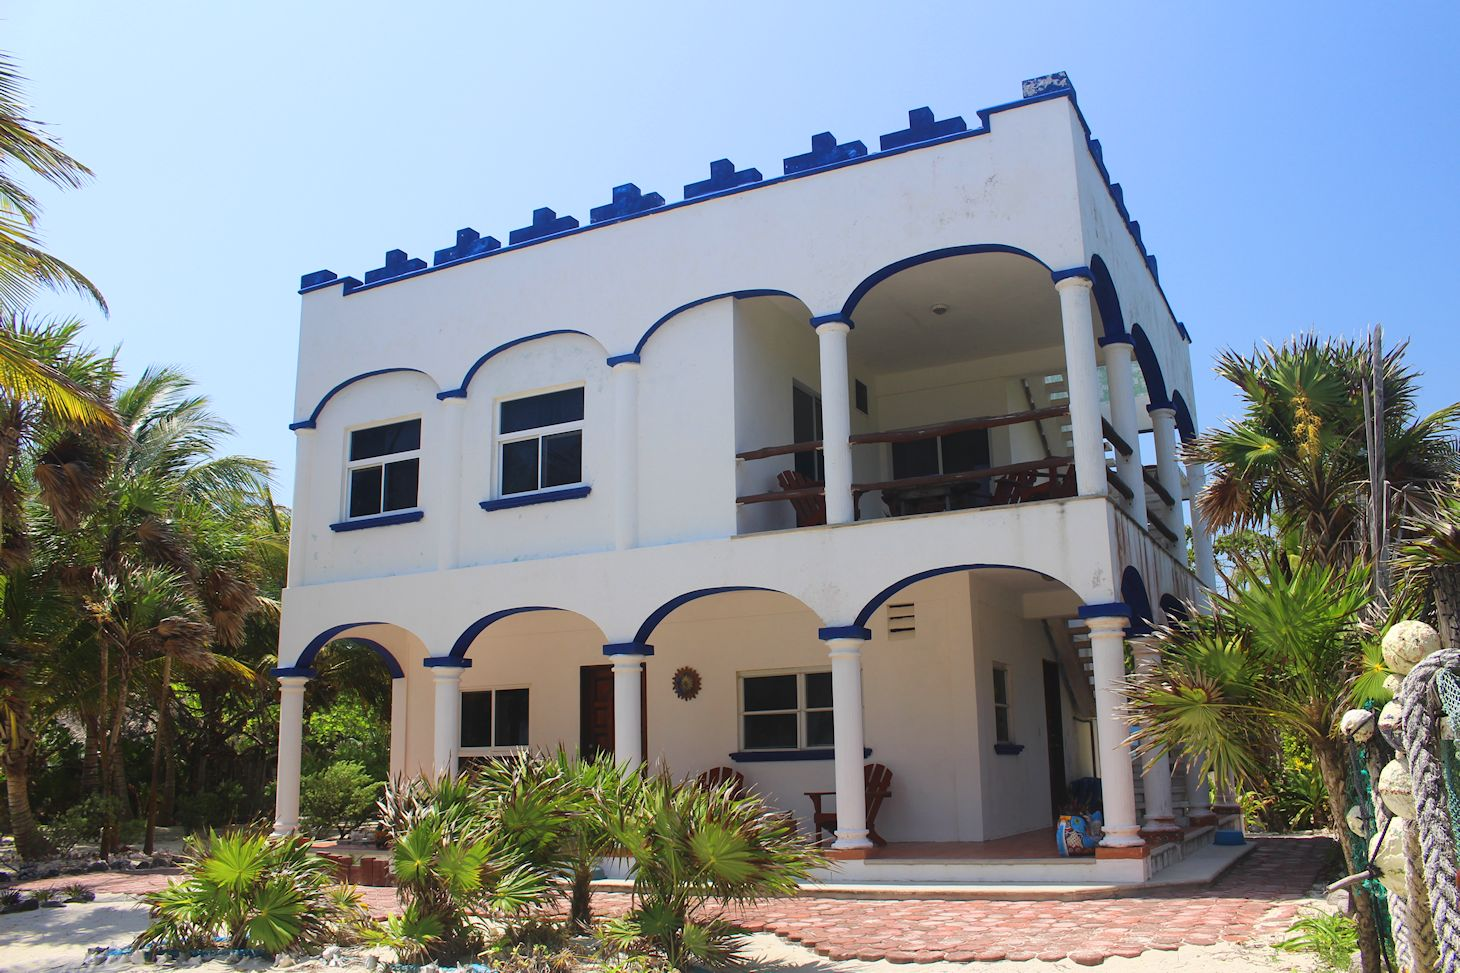 Playa Sonrisa Main Building